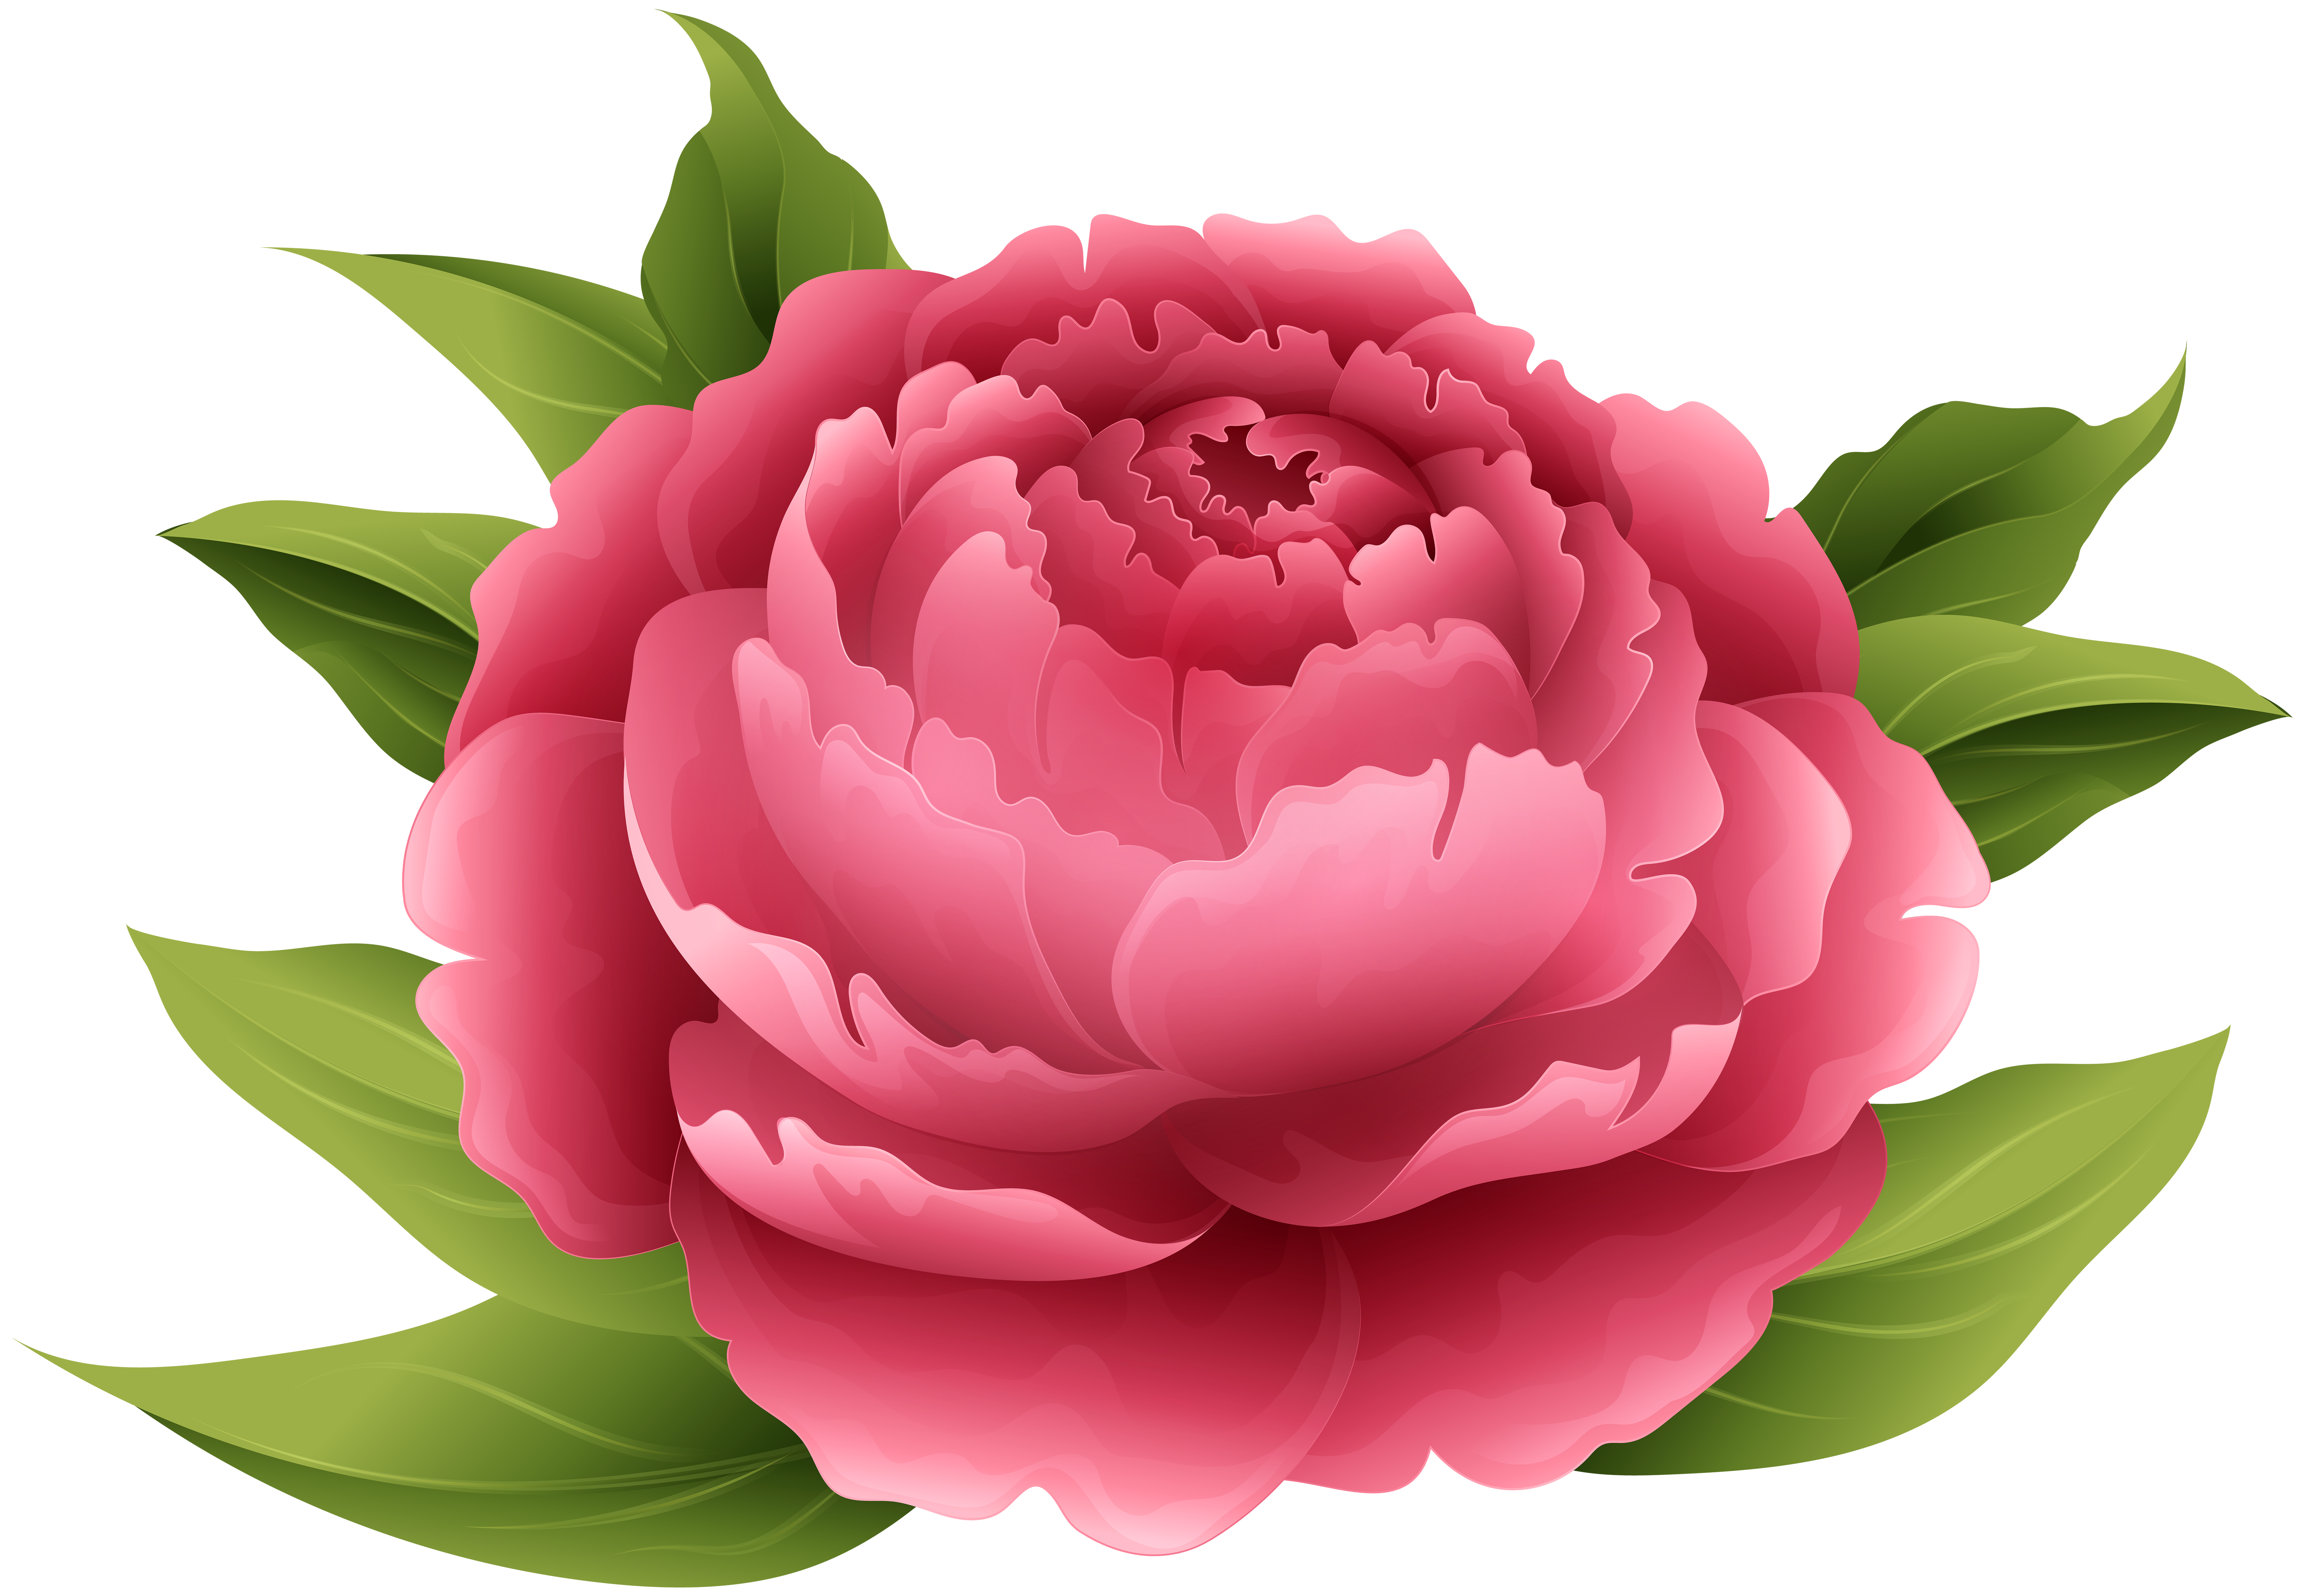 Peony flower png. Red clip art image